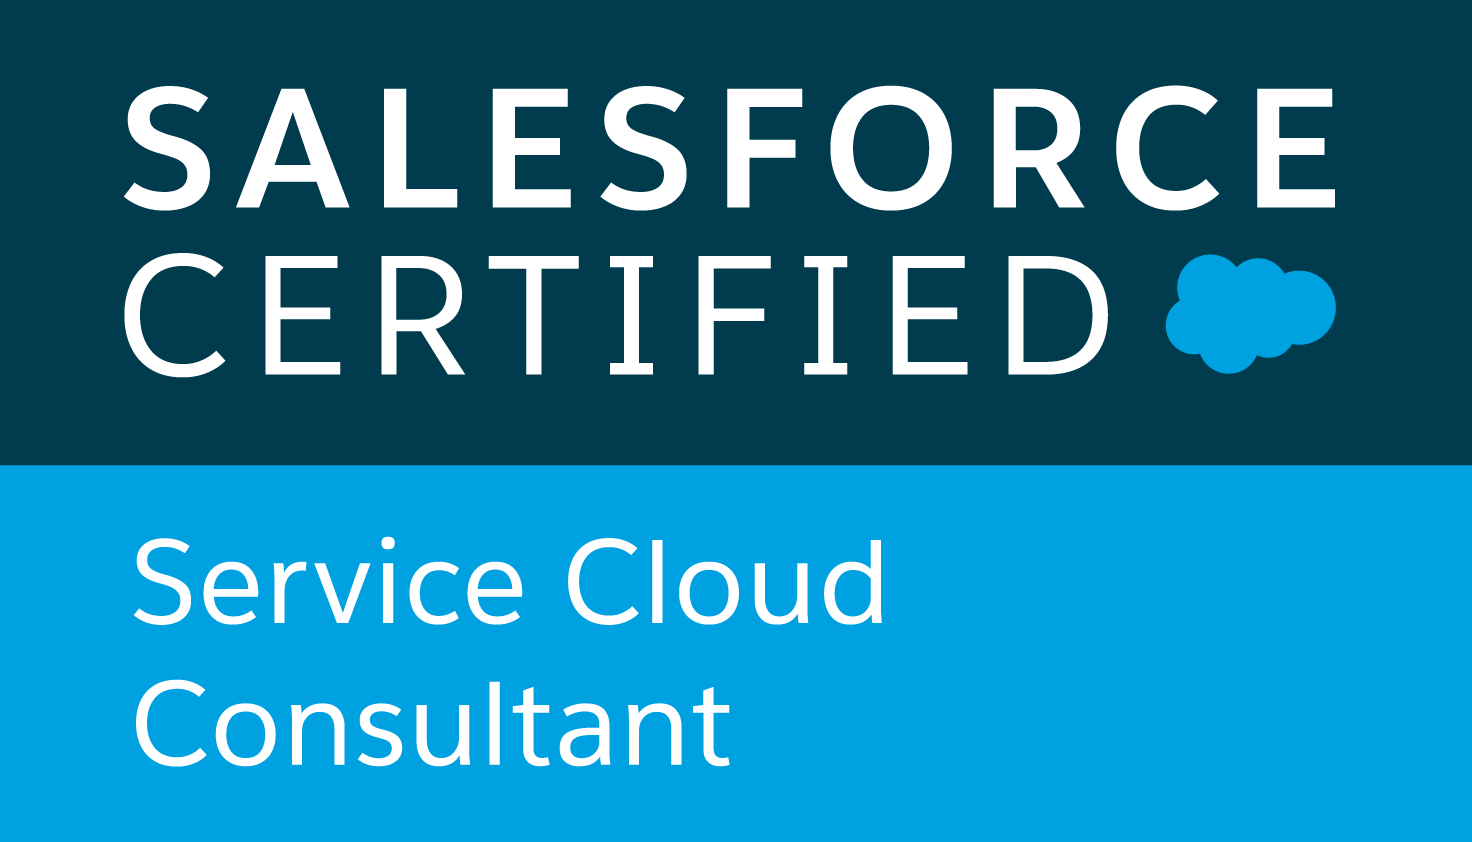 Salesforce: The Detail Department